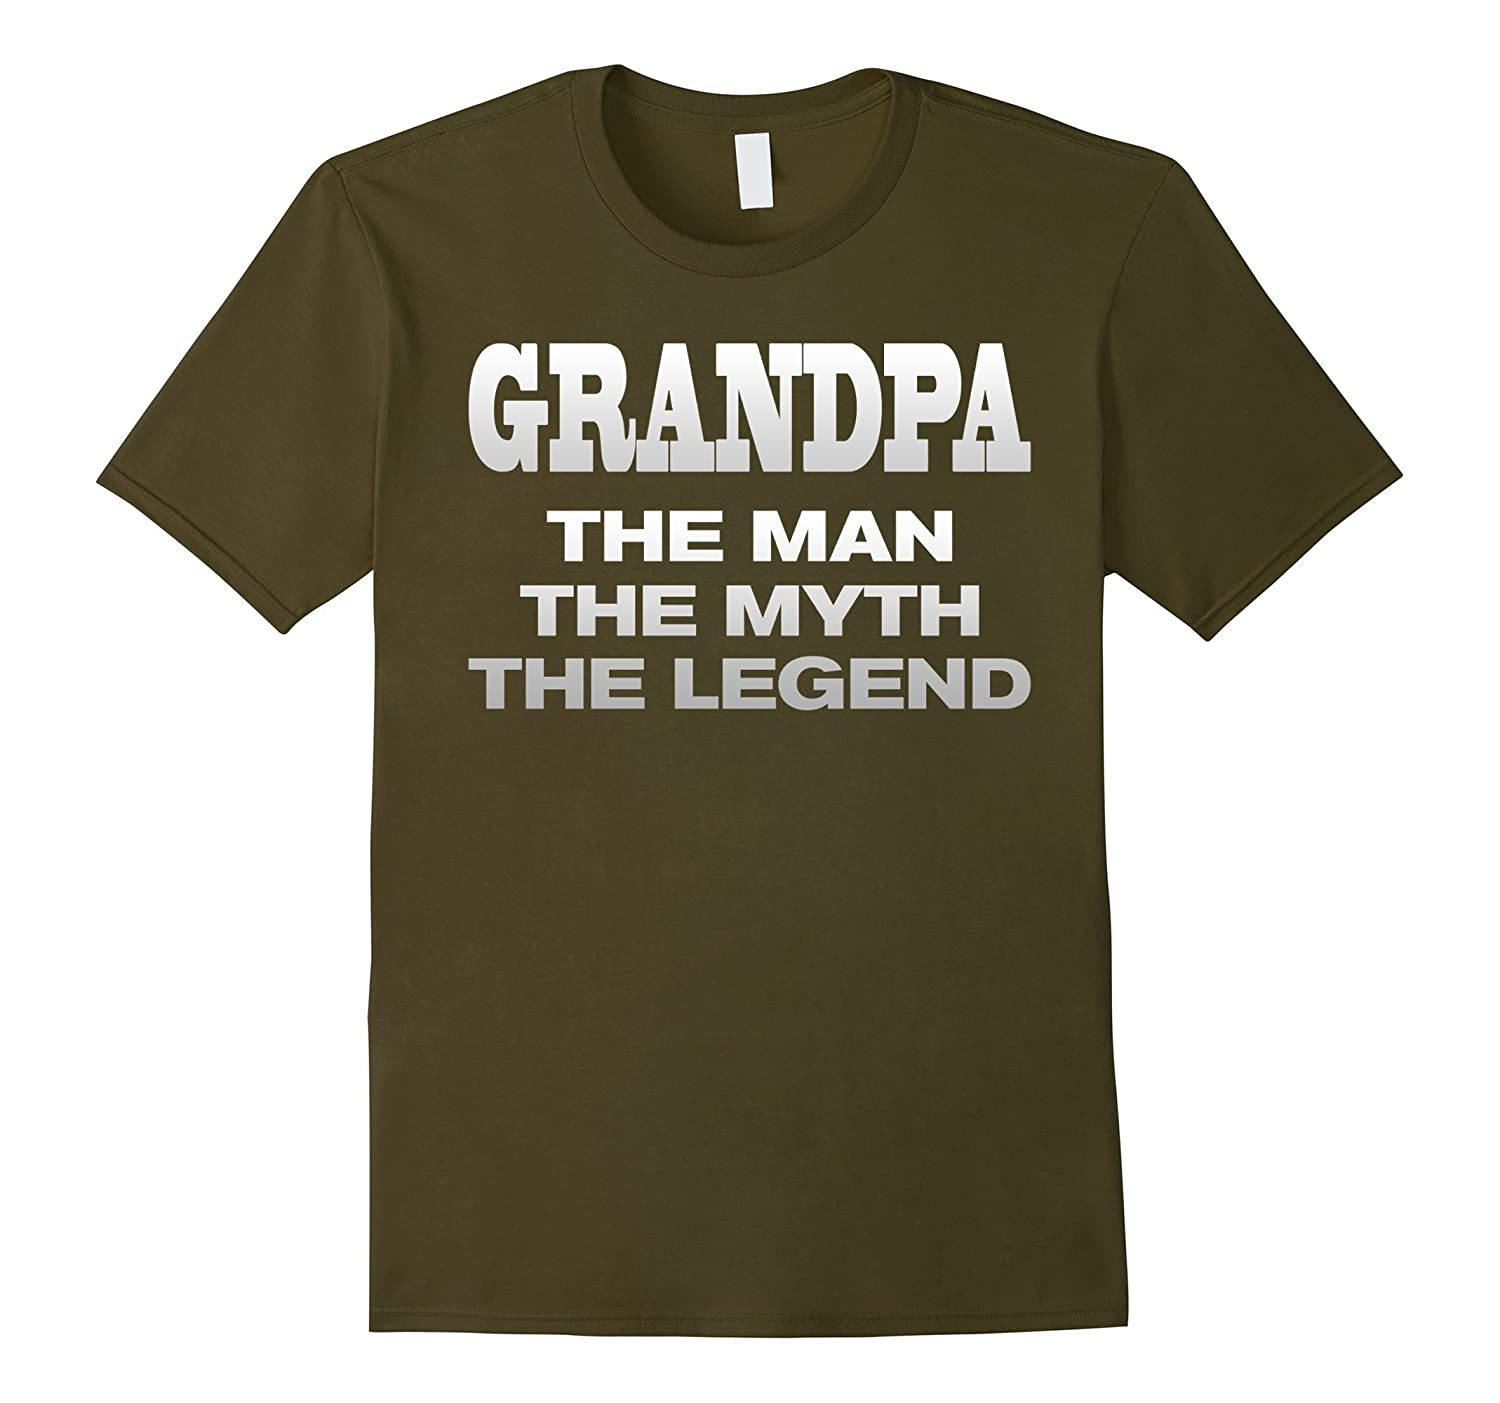 my grandfather a legend Grandpa the man the myth the legend t-shirts from spreadshirt ✓ unique  designs ✓ easy 30 day return policy ✓ shop grandpa the man the myth the.